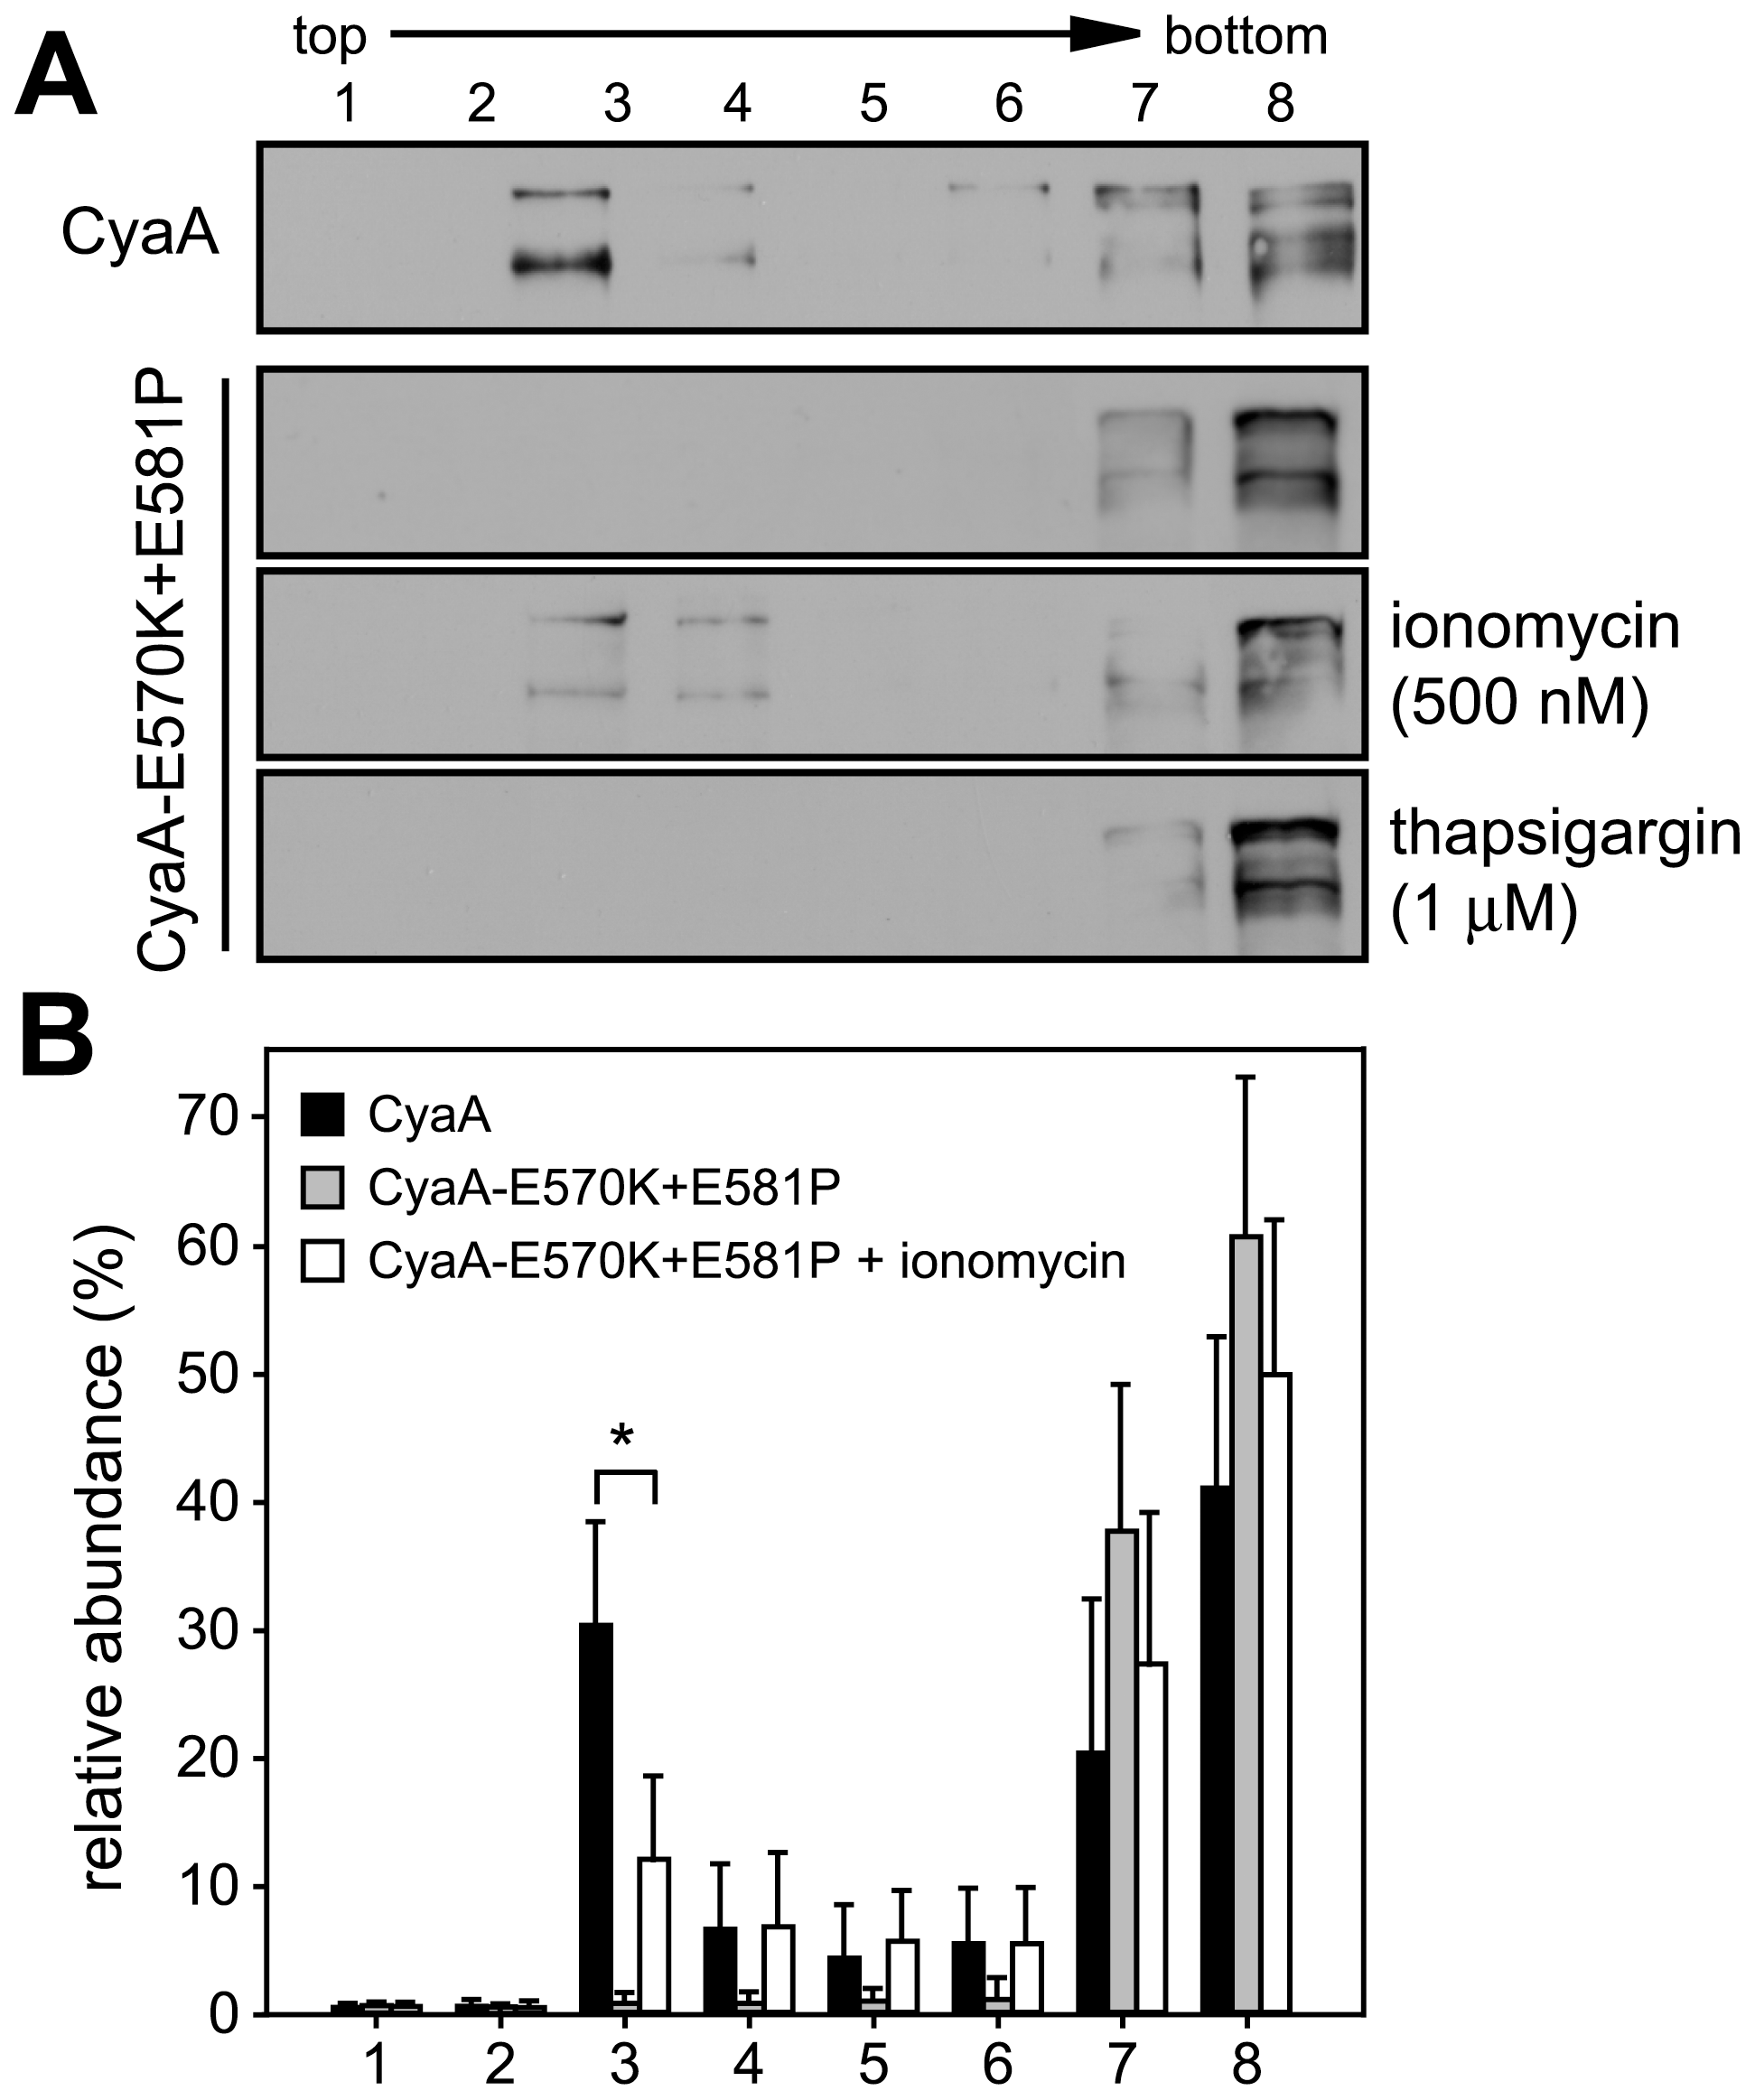 Mobilization of CyaA into lipid rafts depends on influx of extracellular Ca<sup>2+</sup> ions into cells.